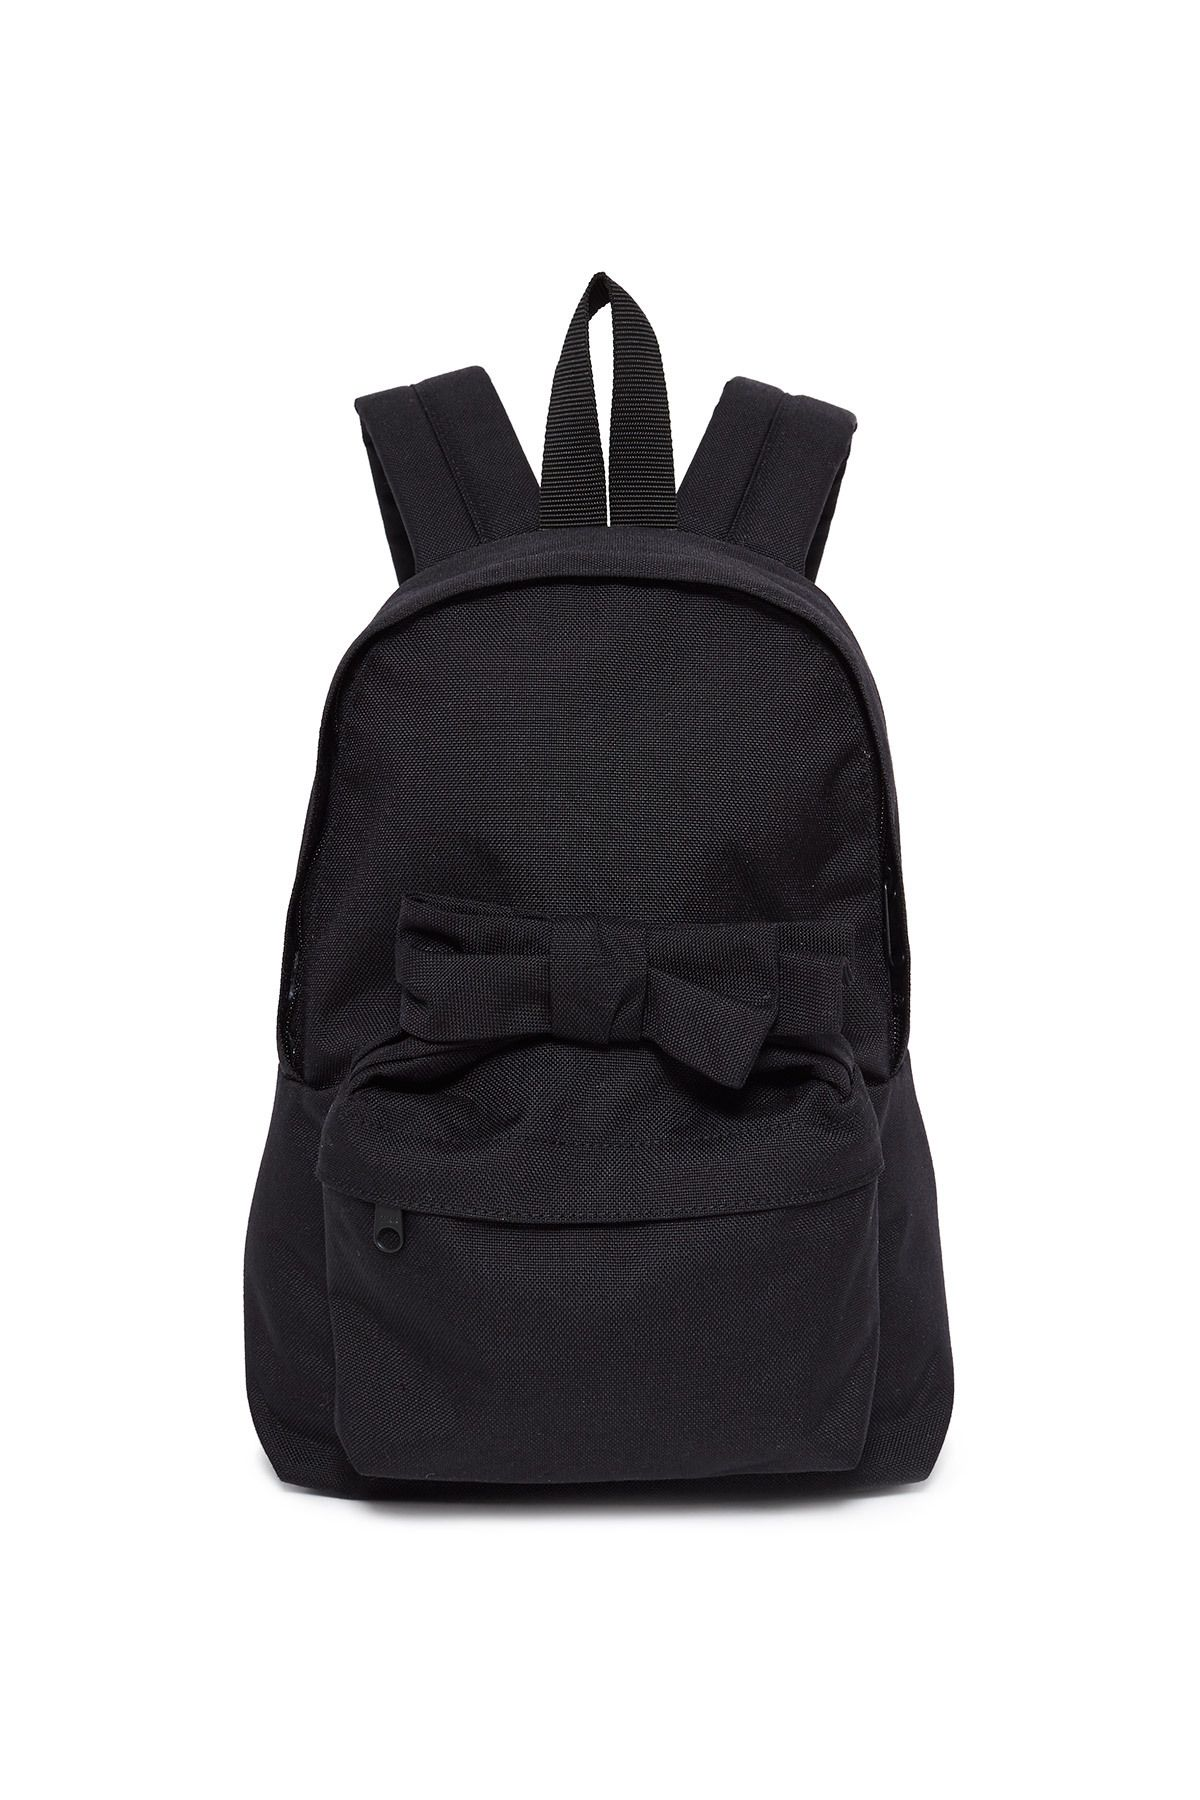 e4ace0938ad Comme Des Garçons GIRL, Canvas Box Mini Backpack CDG GIRL's canvas backpack  comes in a